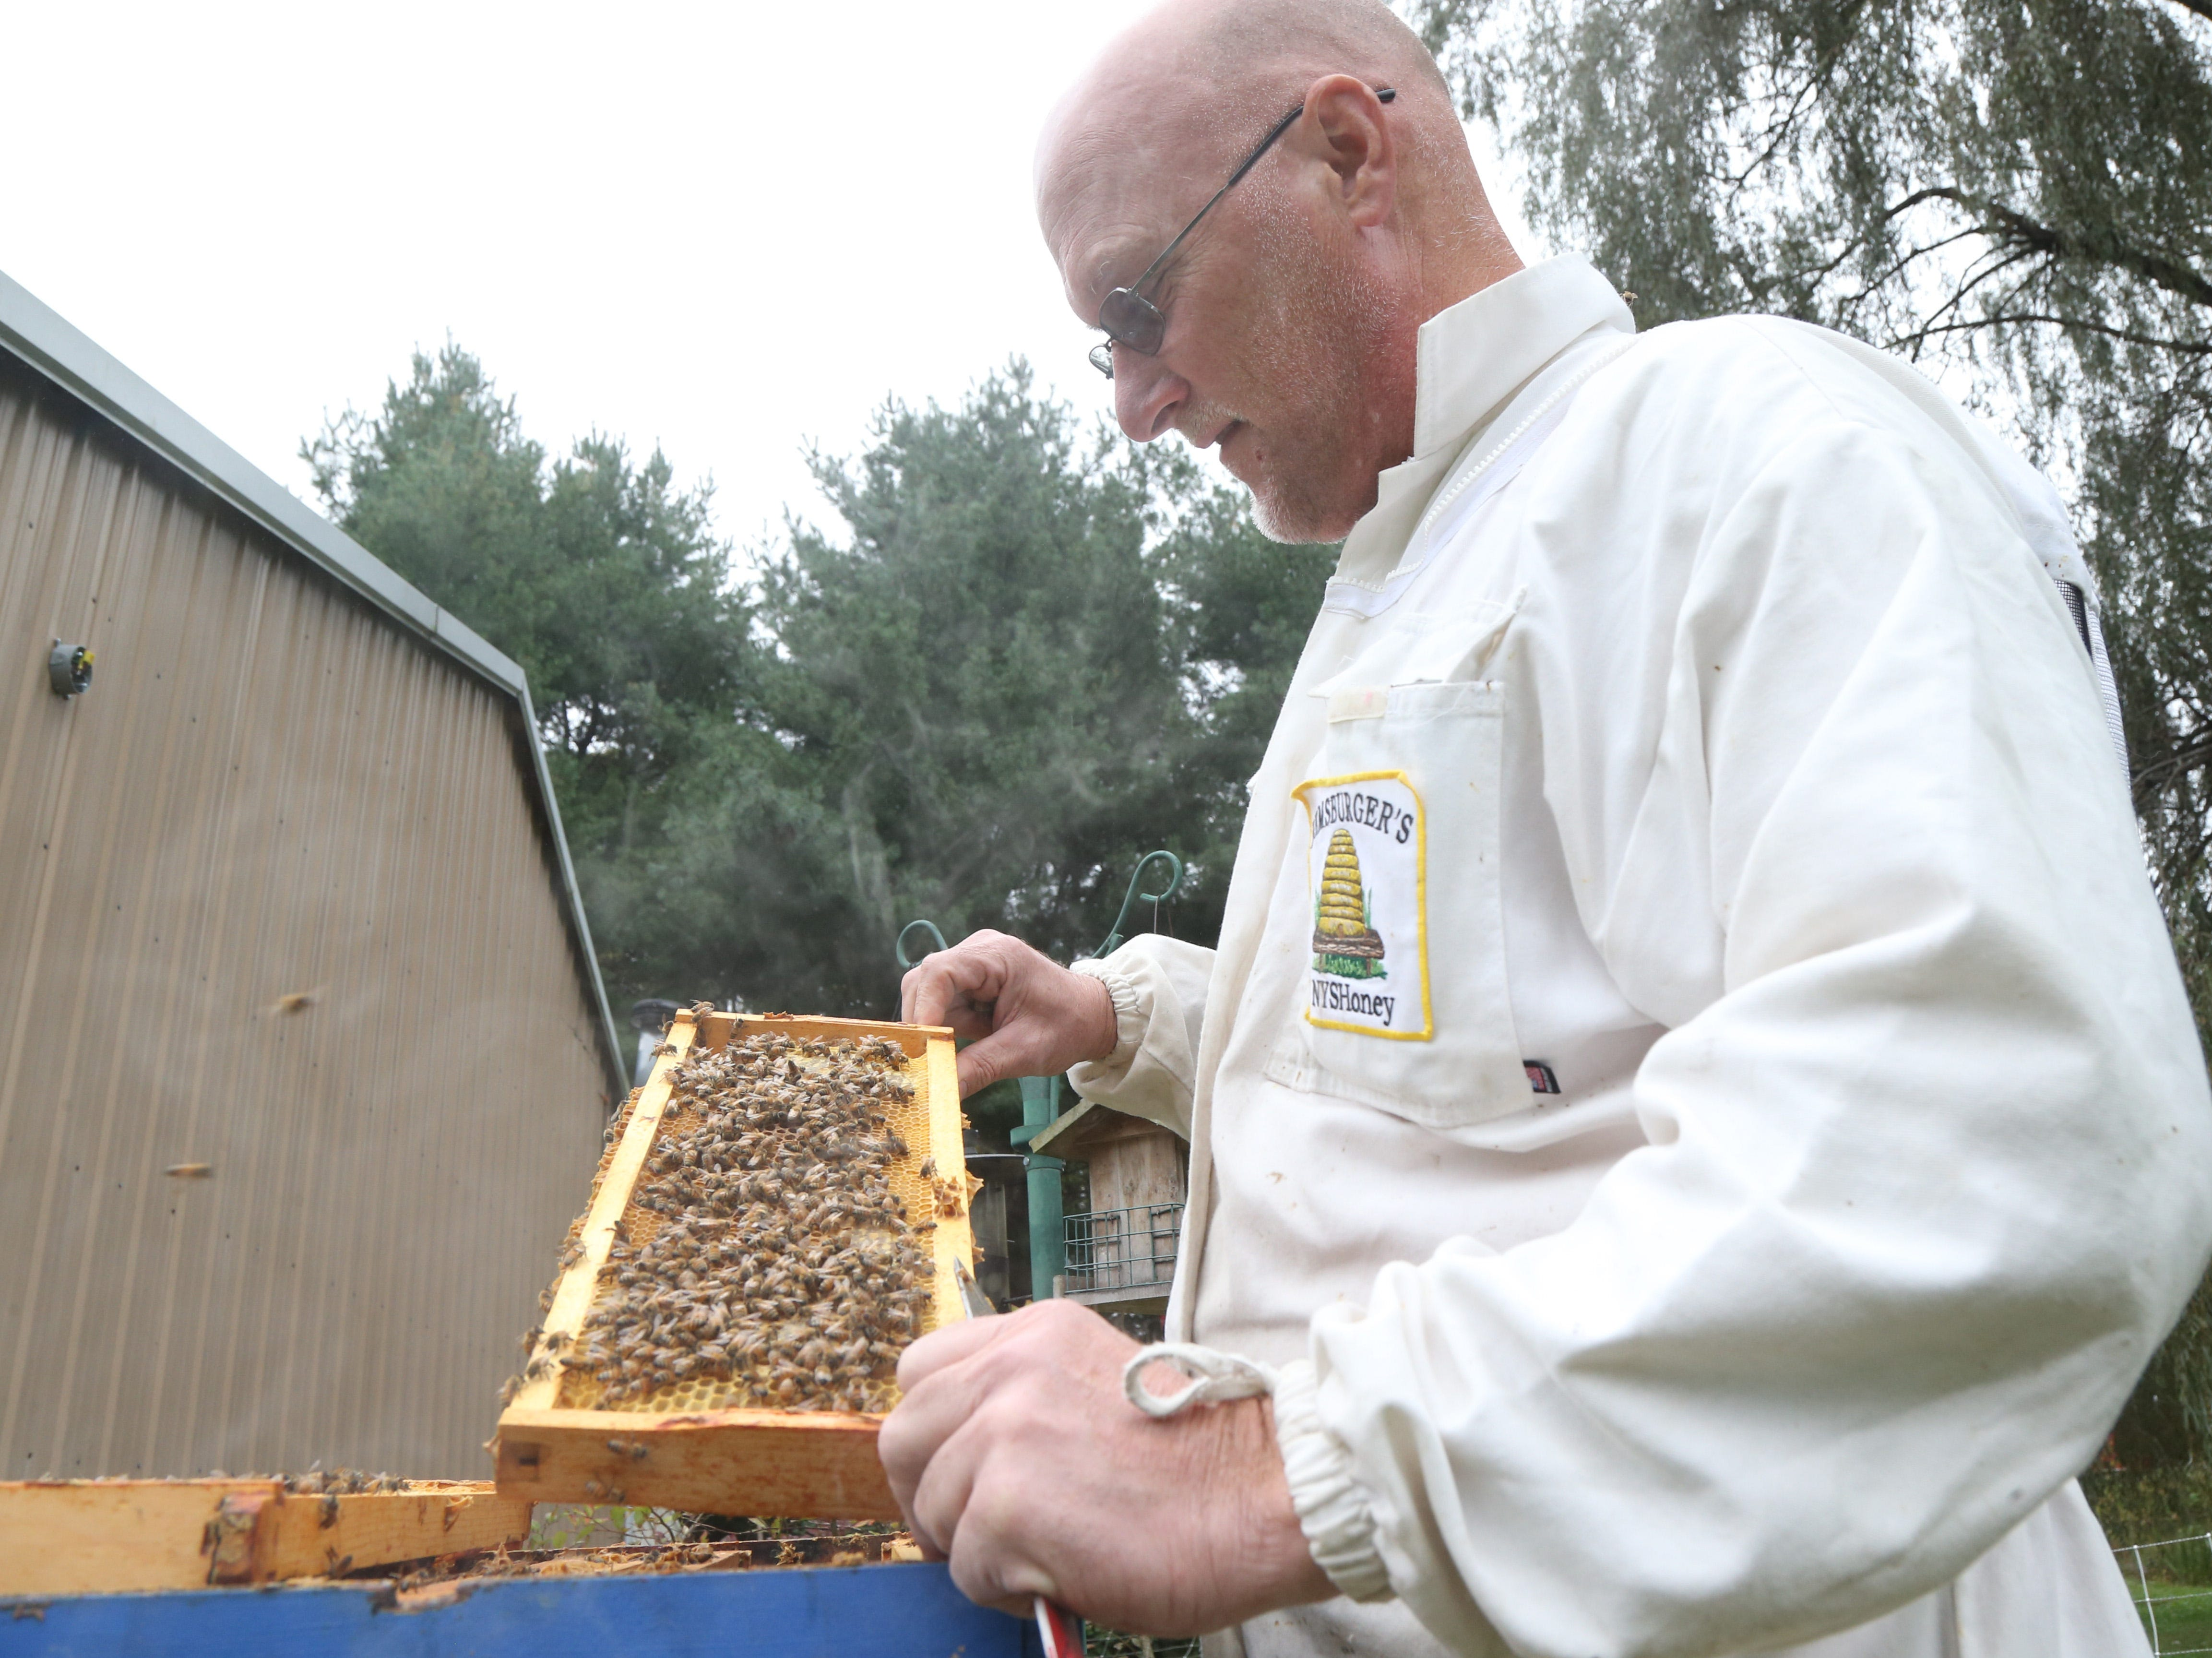 Dennis Remsburger inspects a frame from a beehive at his home in Pleasant Valley on October 8, 2018. The Remsburgers have beehives throughout the Hudson Valley, and currently have the single hive at their home.